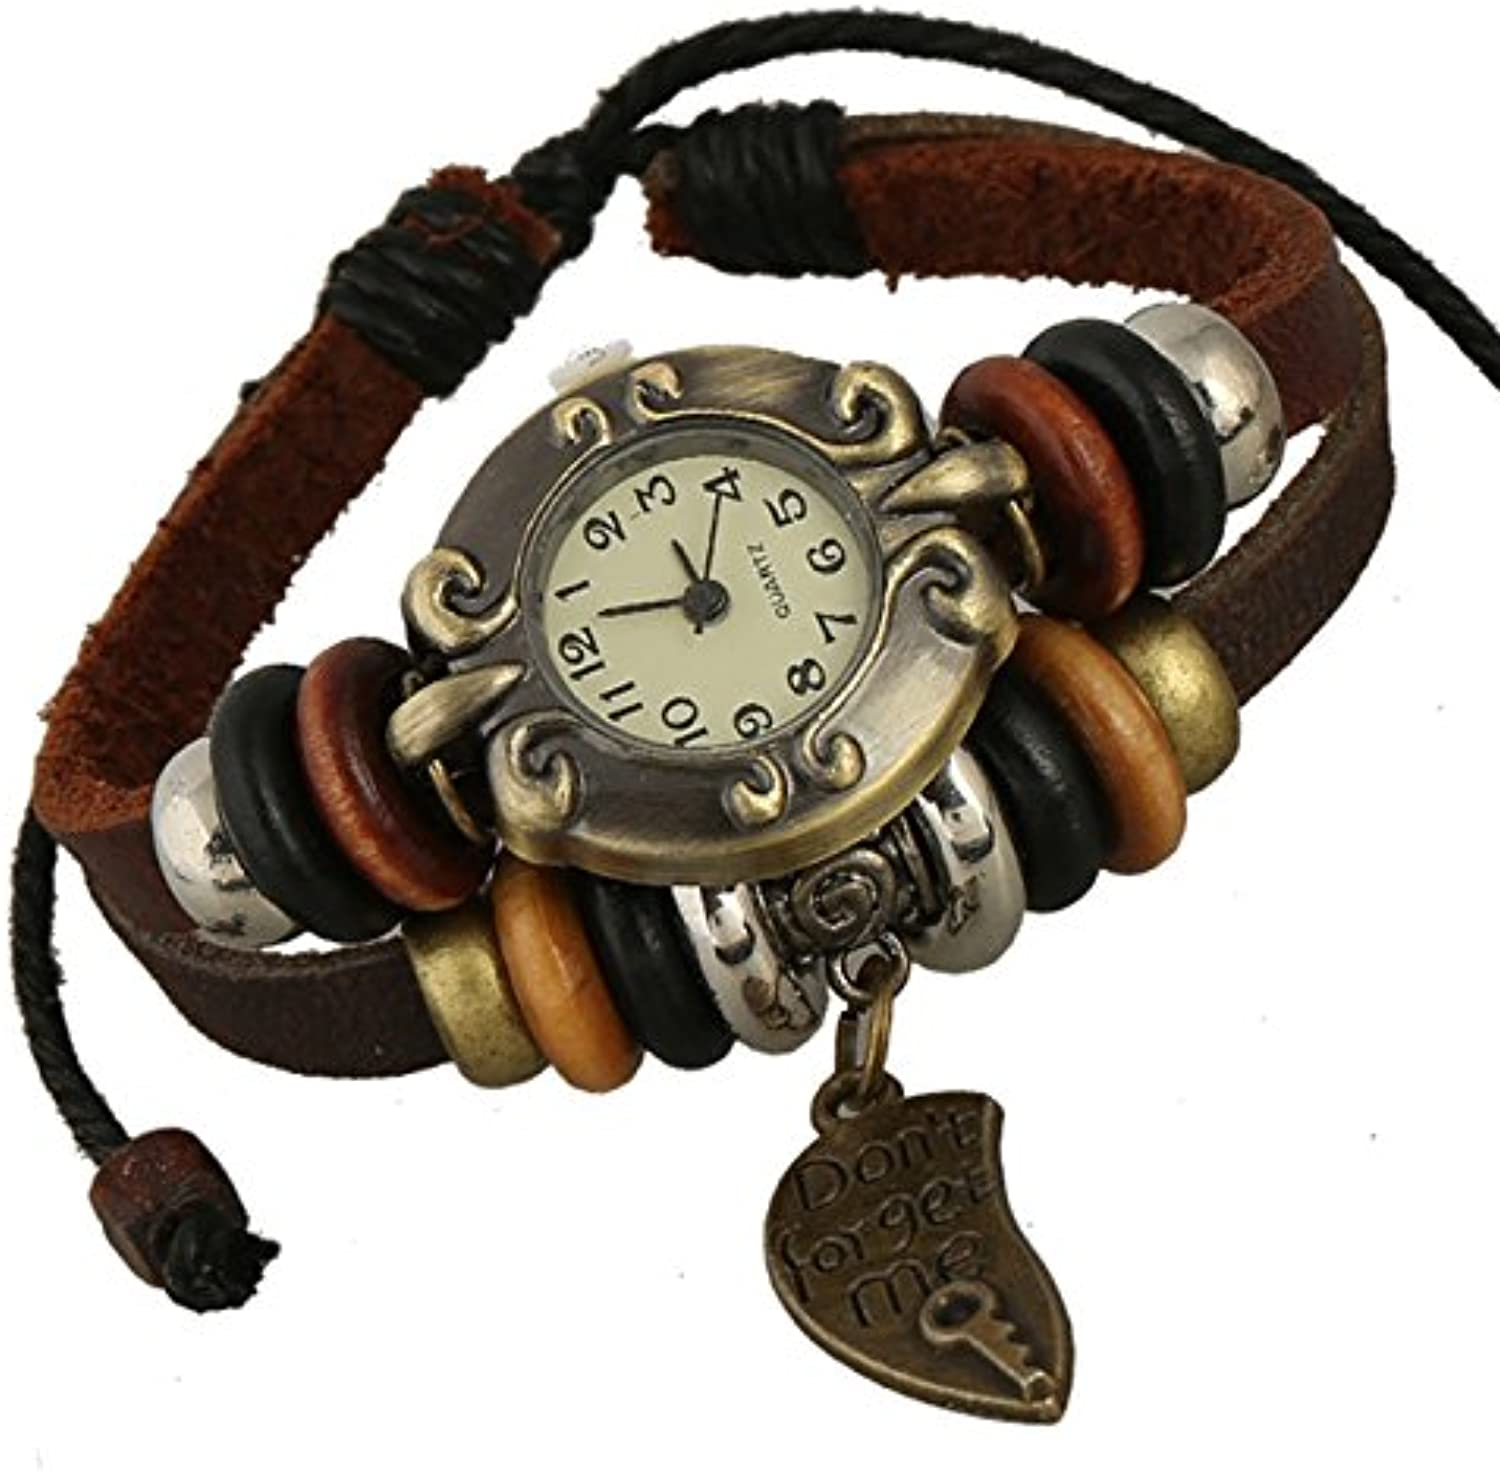 XM New style fashion watch vintage leather ladies Bracelet Watch fashion watch